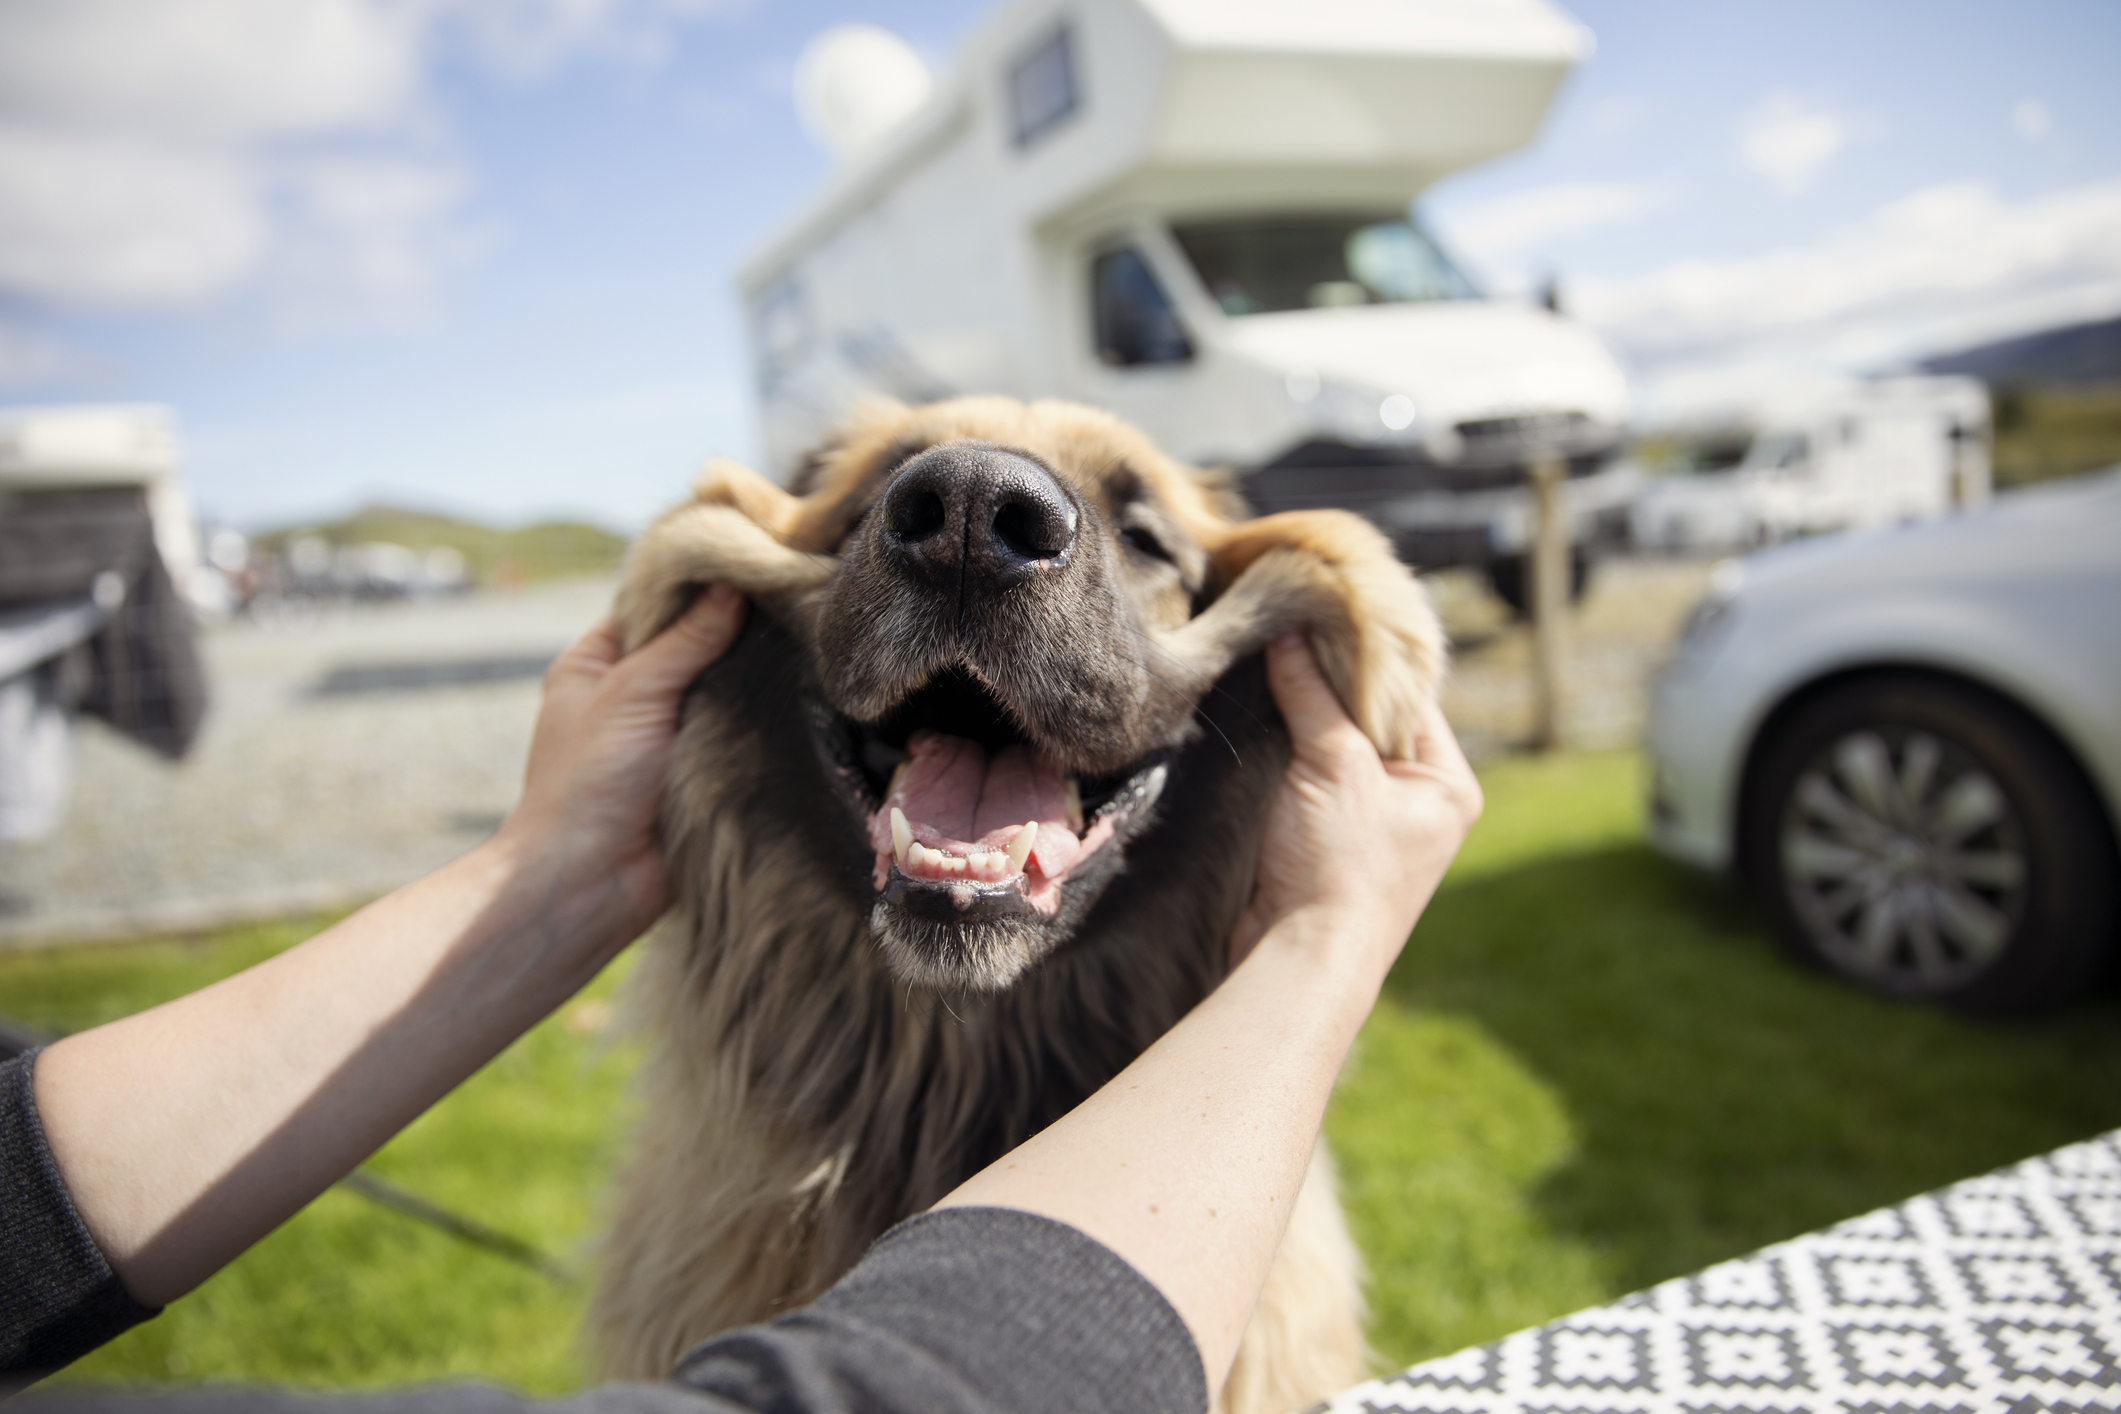 A dog lover grabs the cheeks of a big pooch at an RV camp.